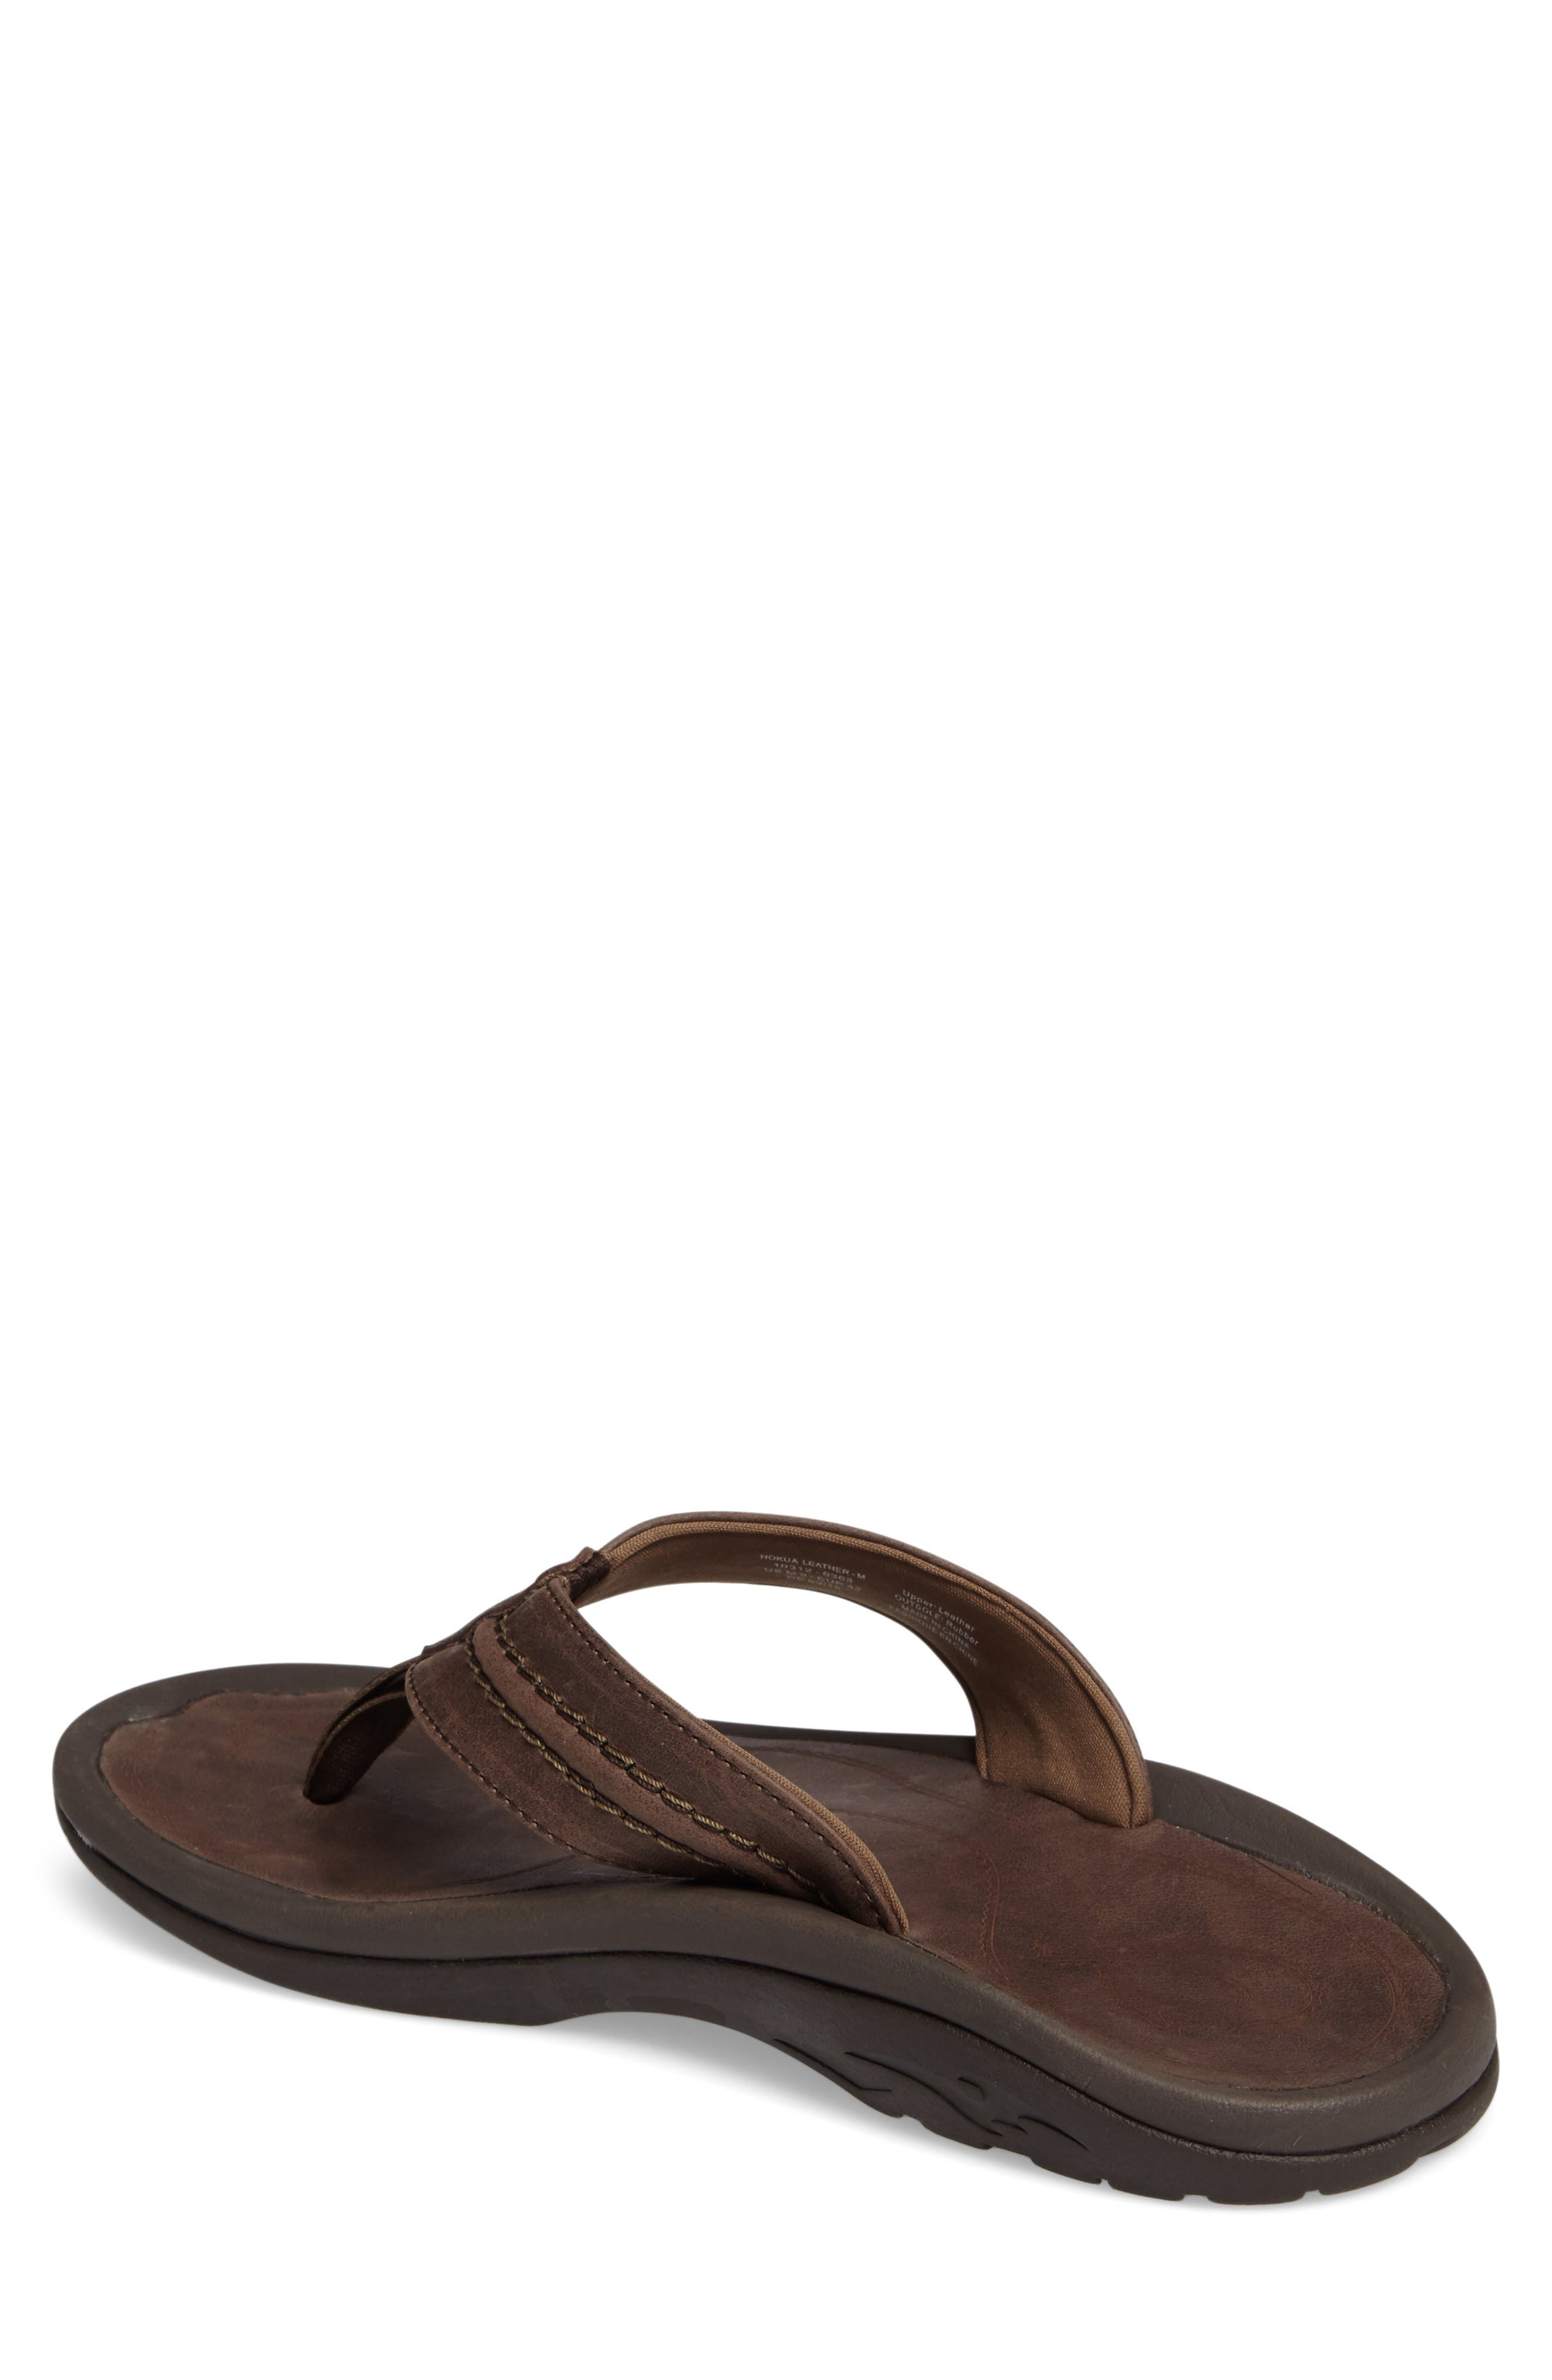 Hokua Flip Flop,                             Alternate thumbnail 2, color,                             DARK WOOD LEATHER